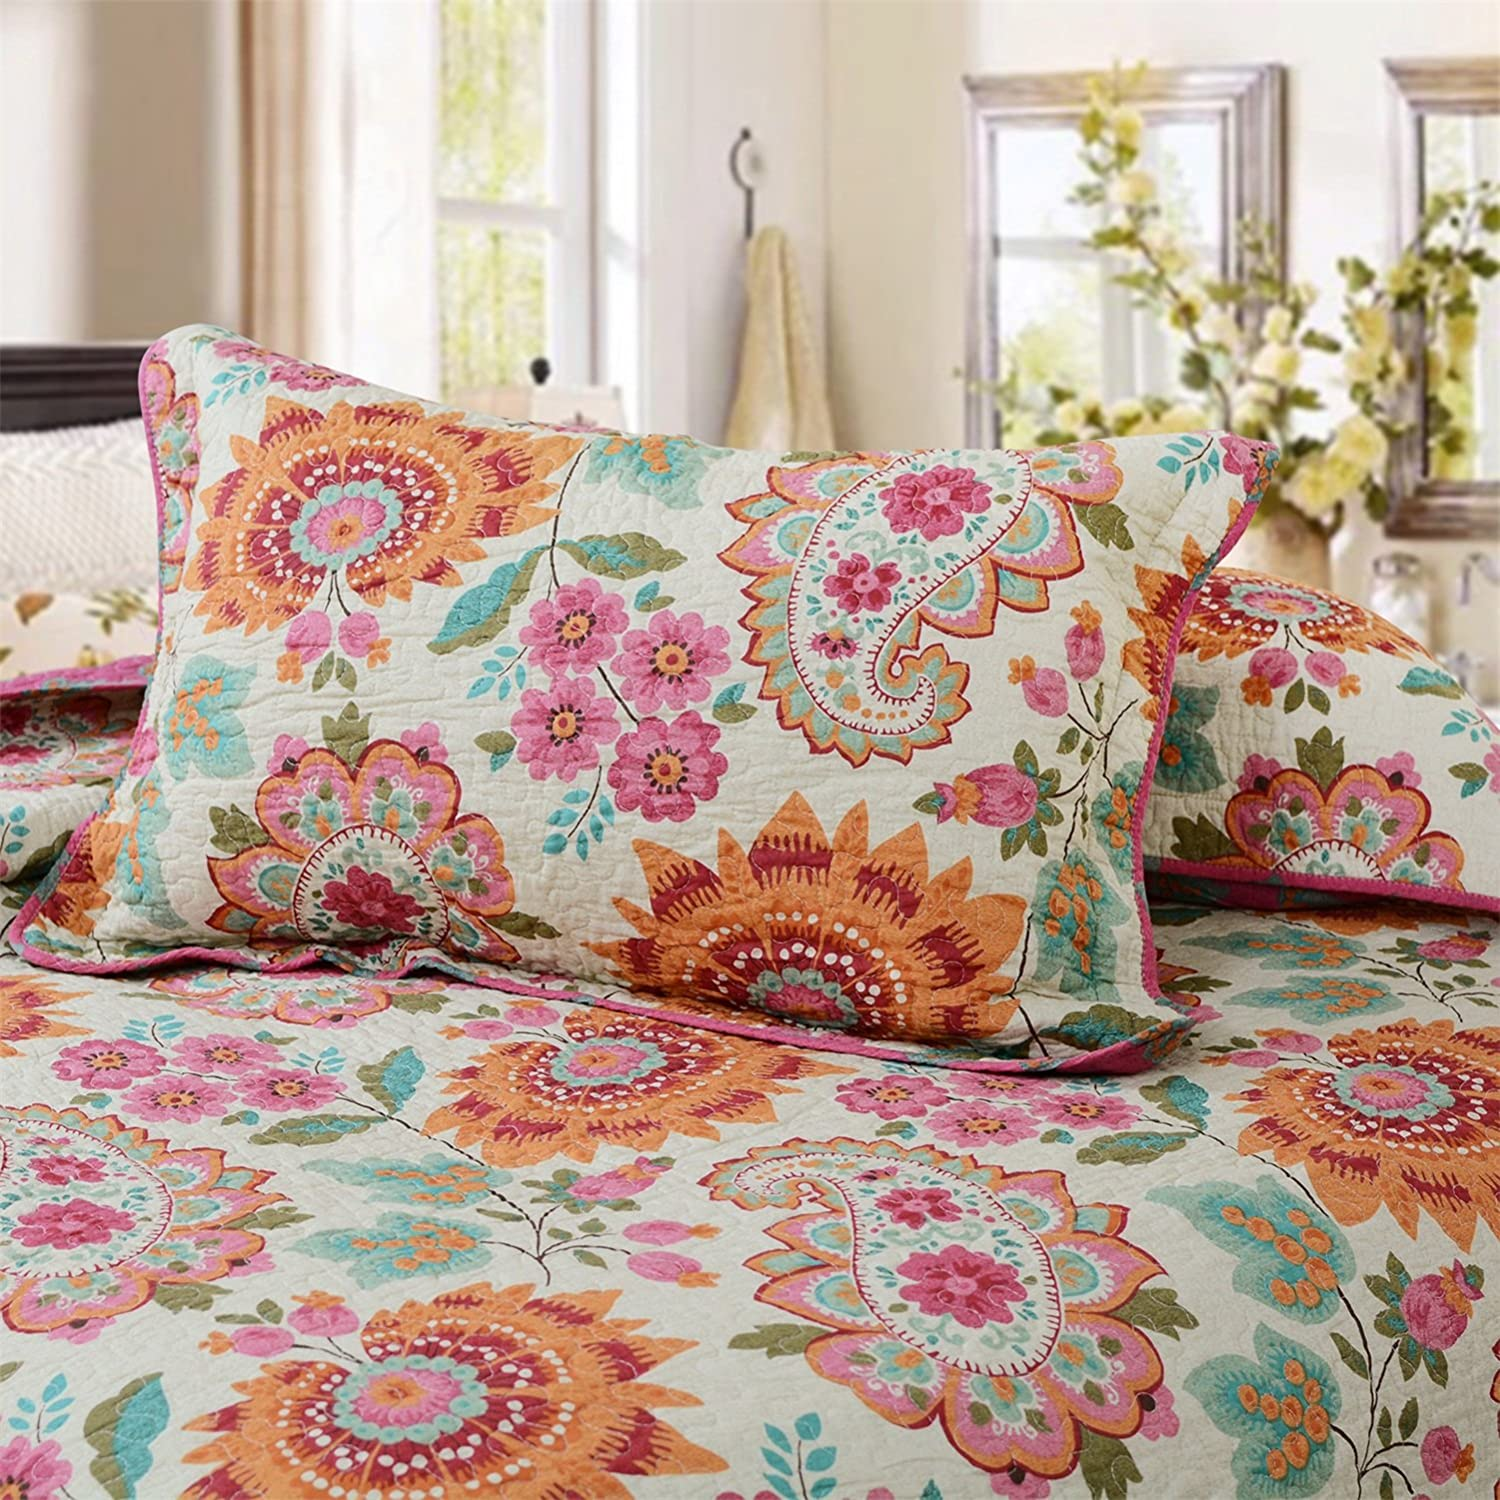 Brandream Bohemian Bedding Sets Boho Style Comforter Sets 100% Cotton Quilts Queen Size Bedspreads